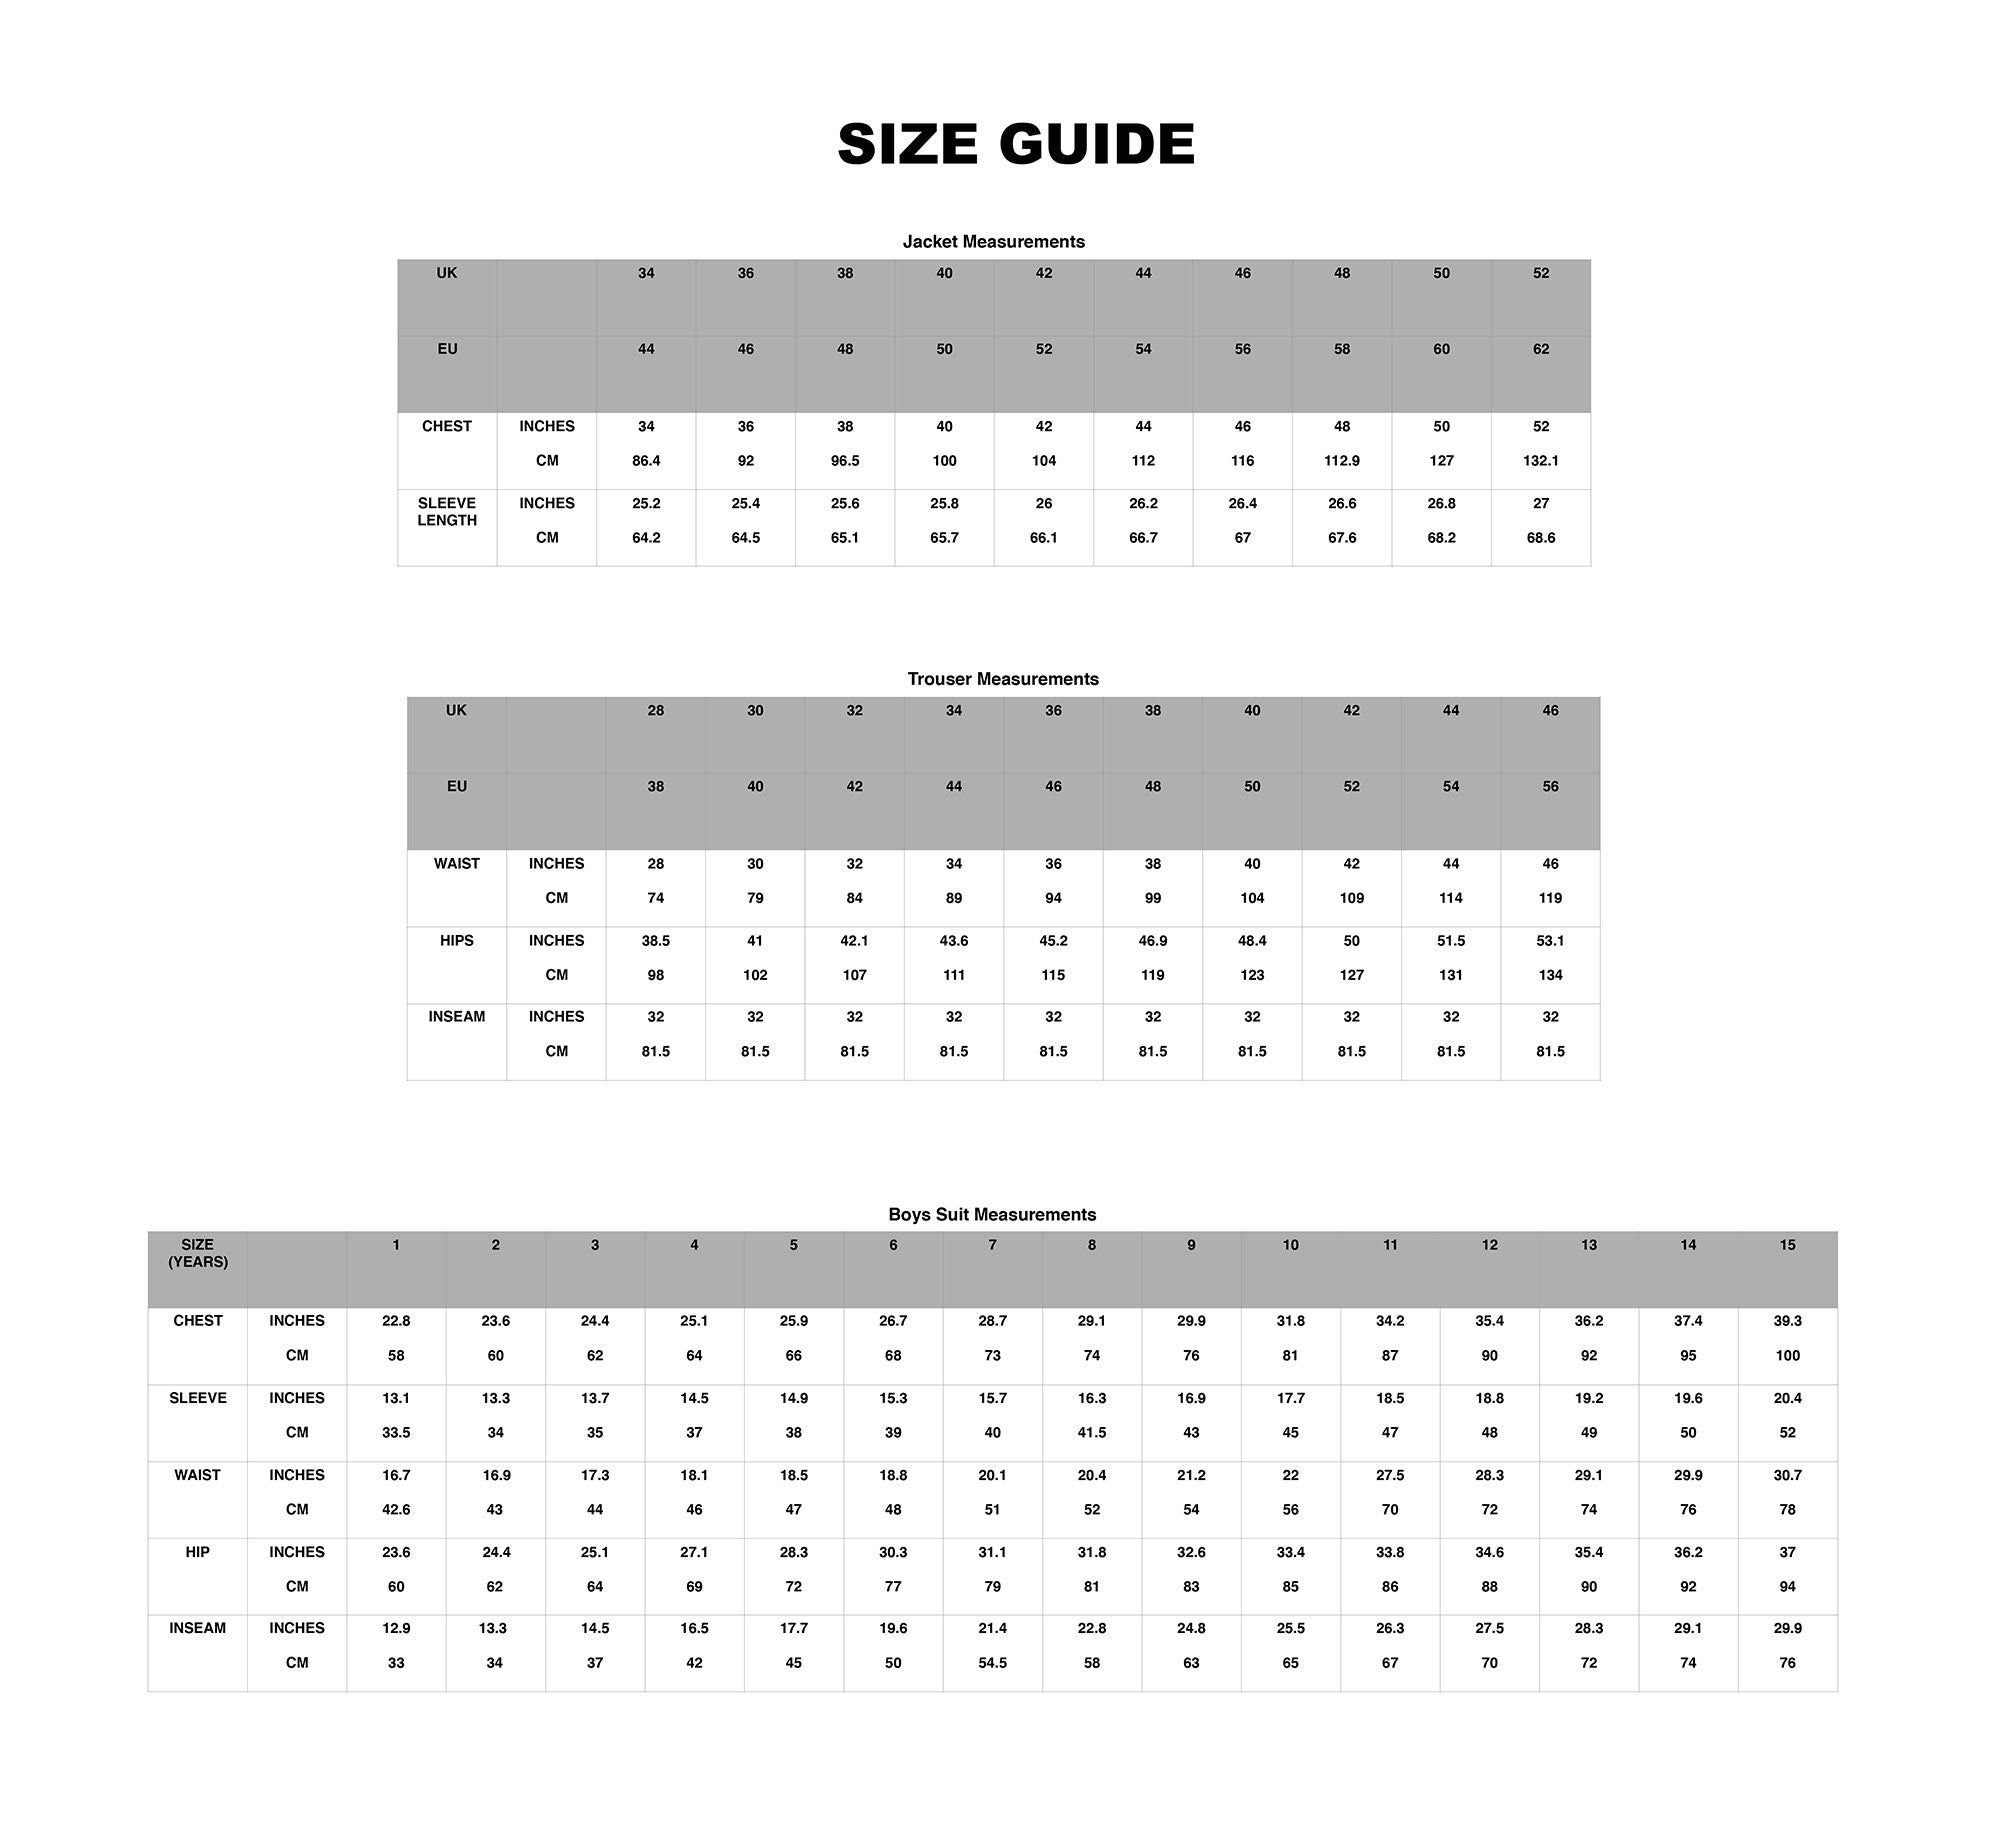 House Of Cavani Size Guide Numbers